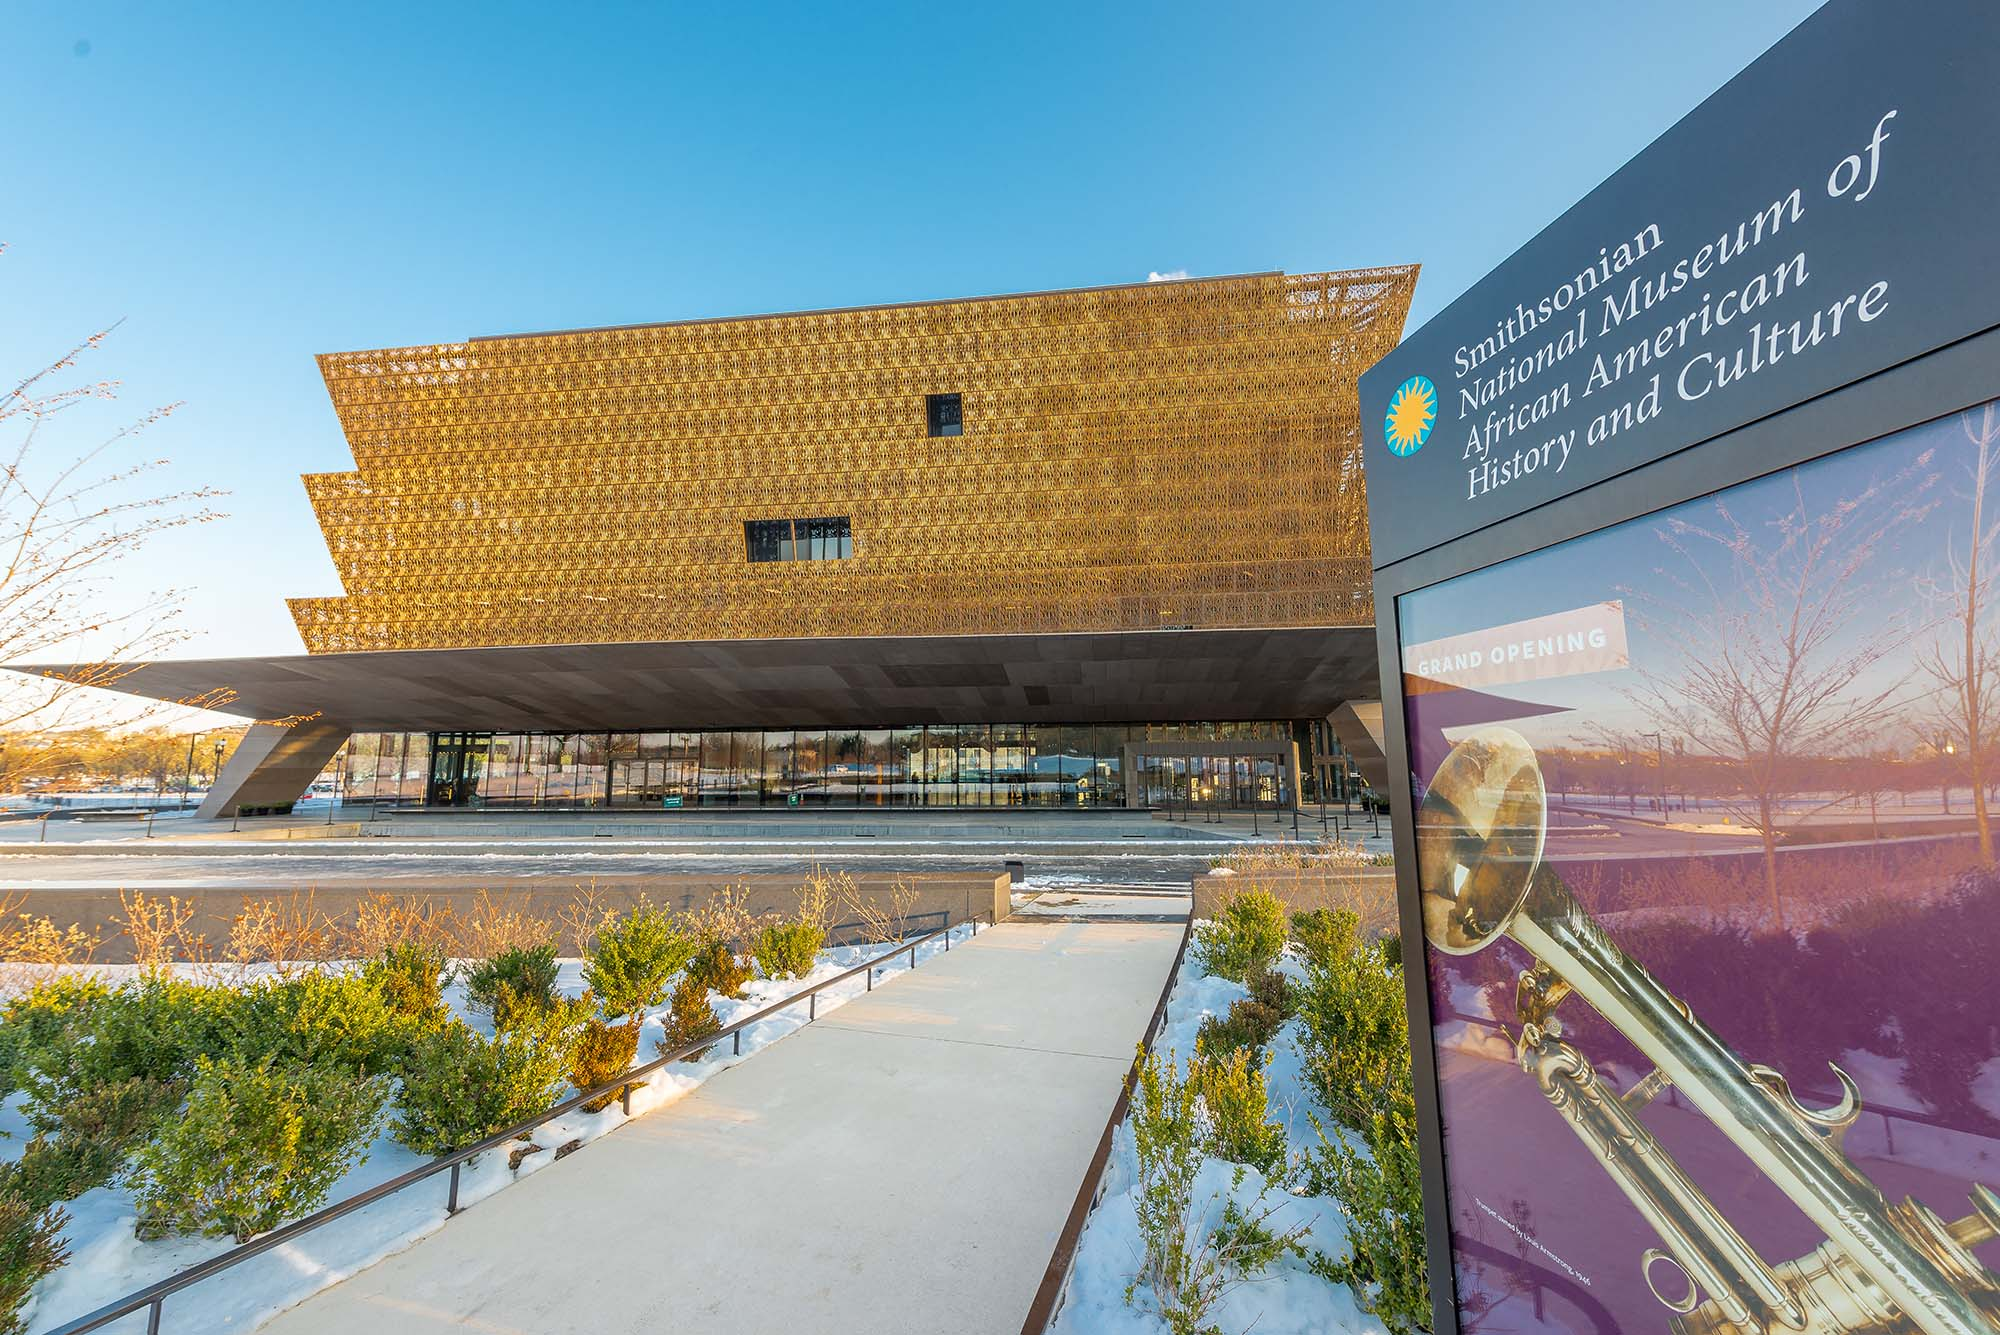 Working with the Smithonsian Institution, McKissack helped the National Museum of African American History and Culture development team switch from the classic design-bid-build approach to a construction manager-at-risk delivery.